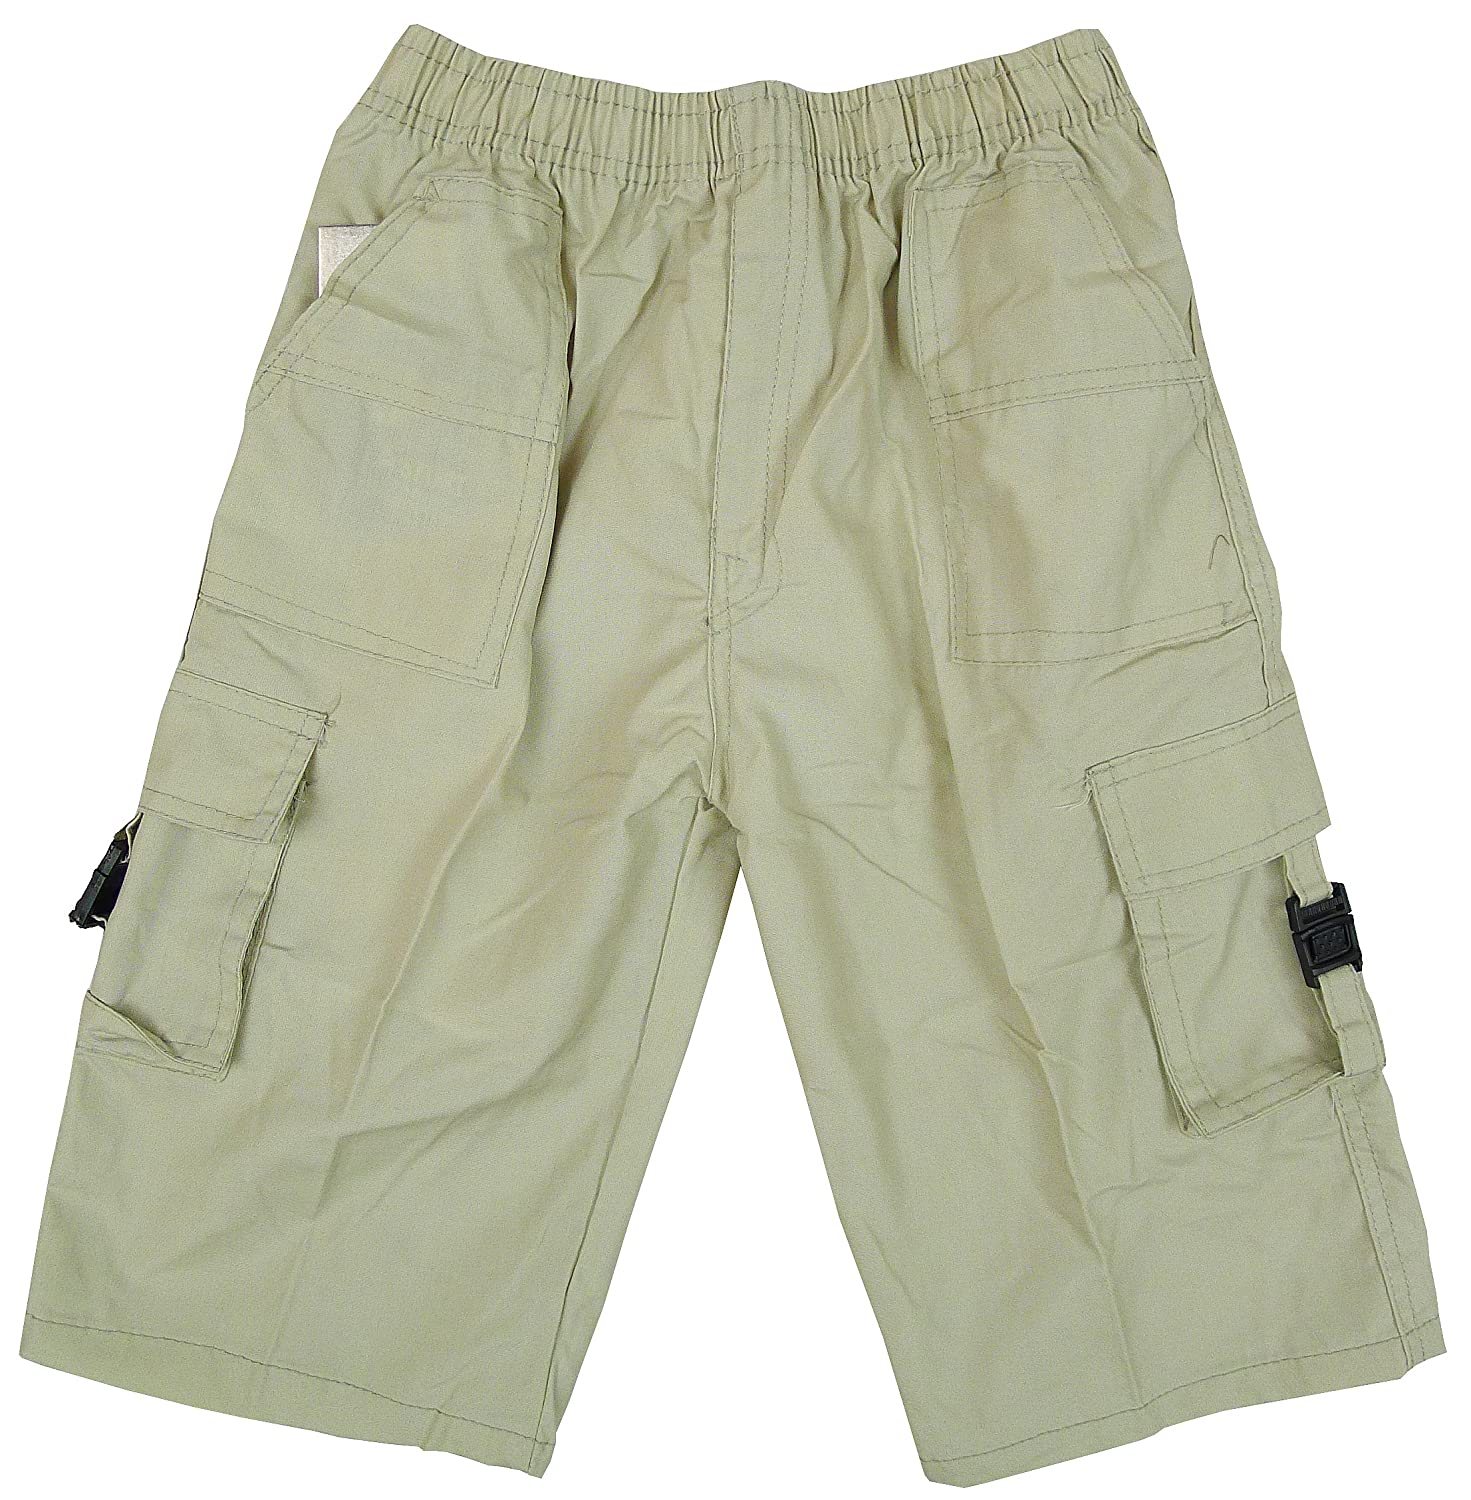 Boys Plain Buckle Pocket Combat Cargo Fashion Shorts Sizes from 3 to 12 Years